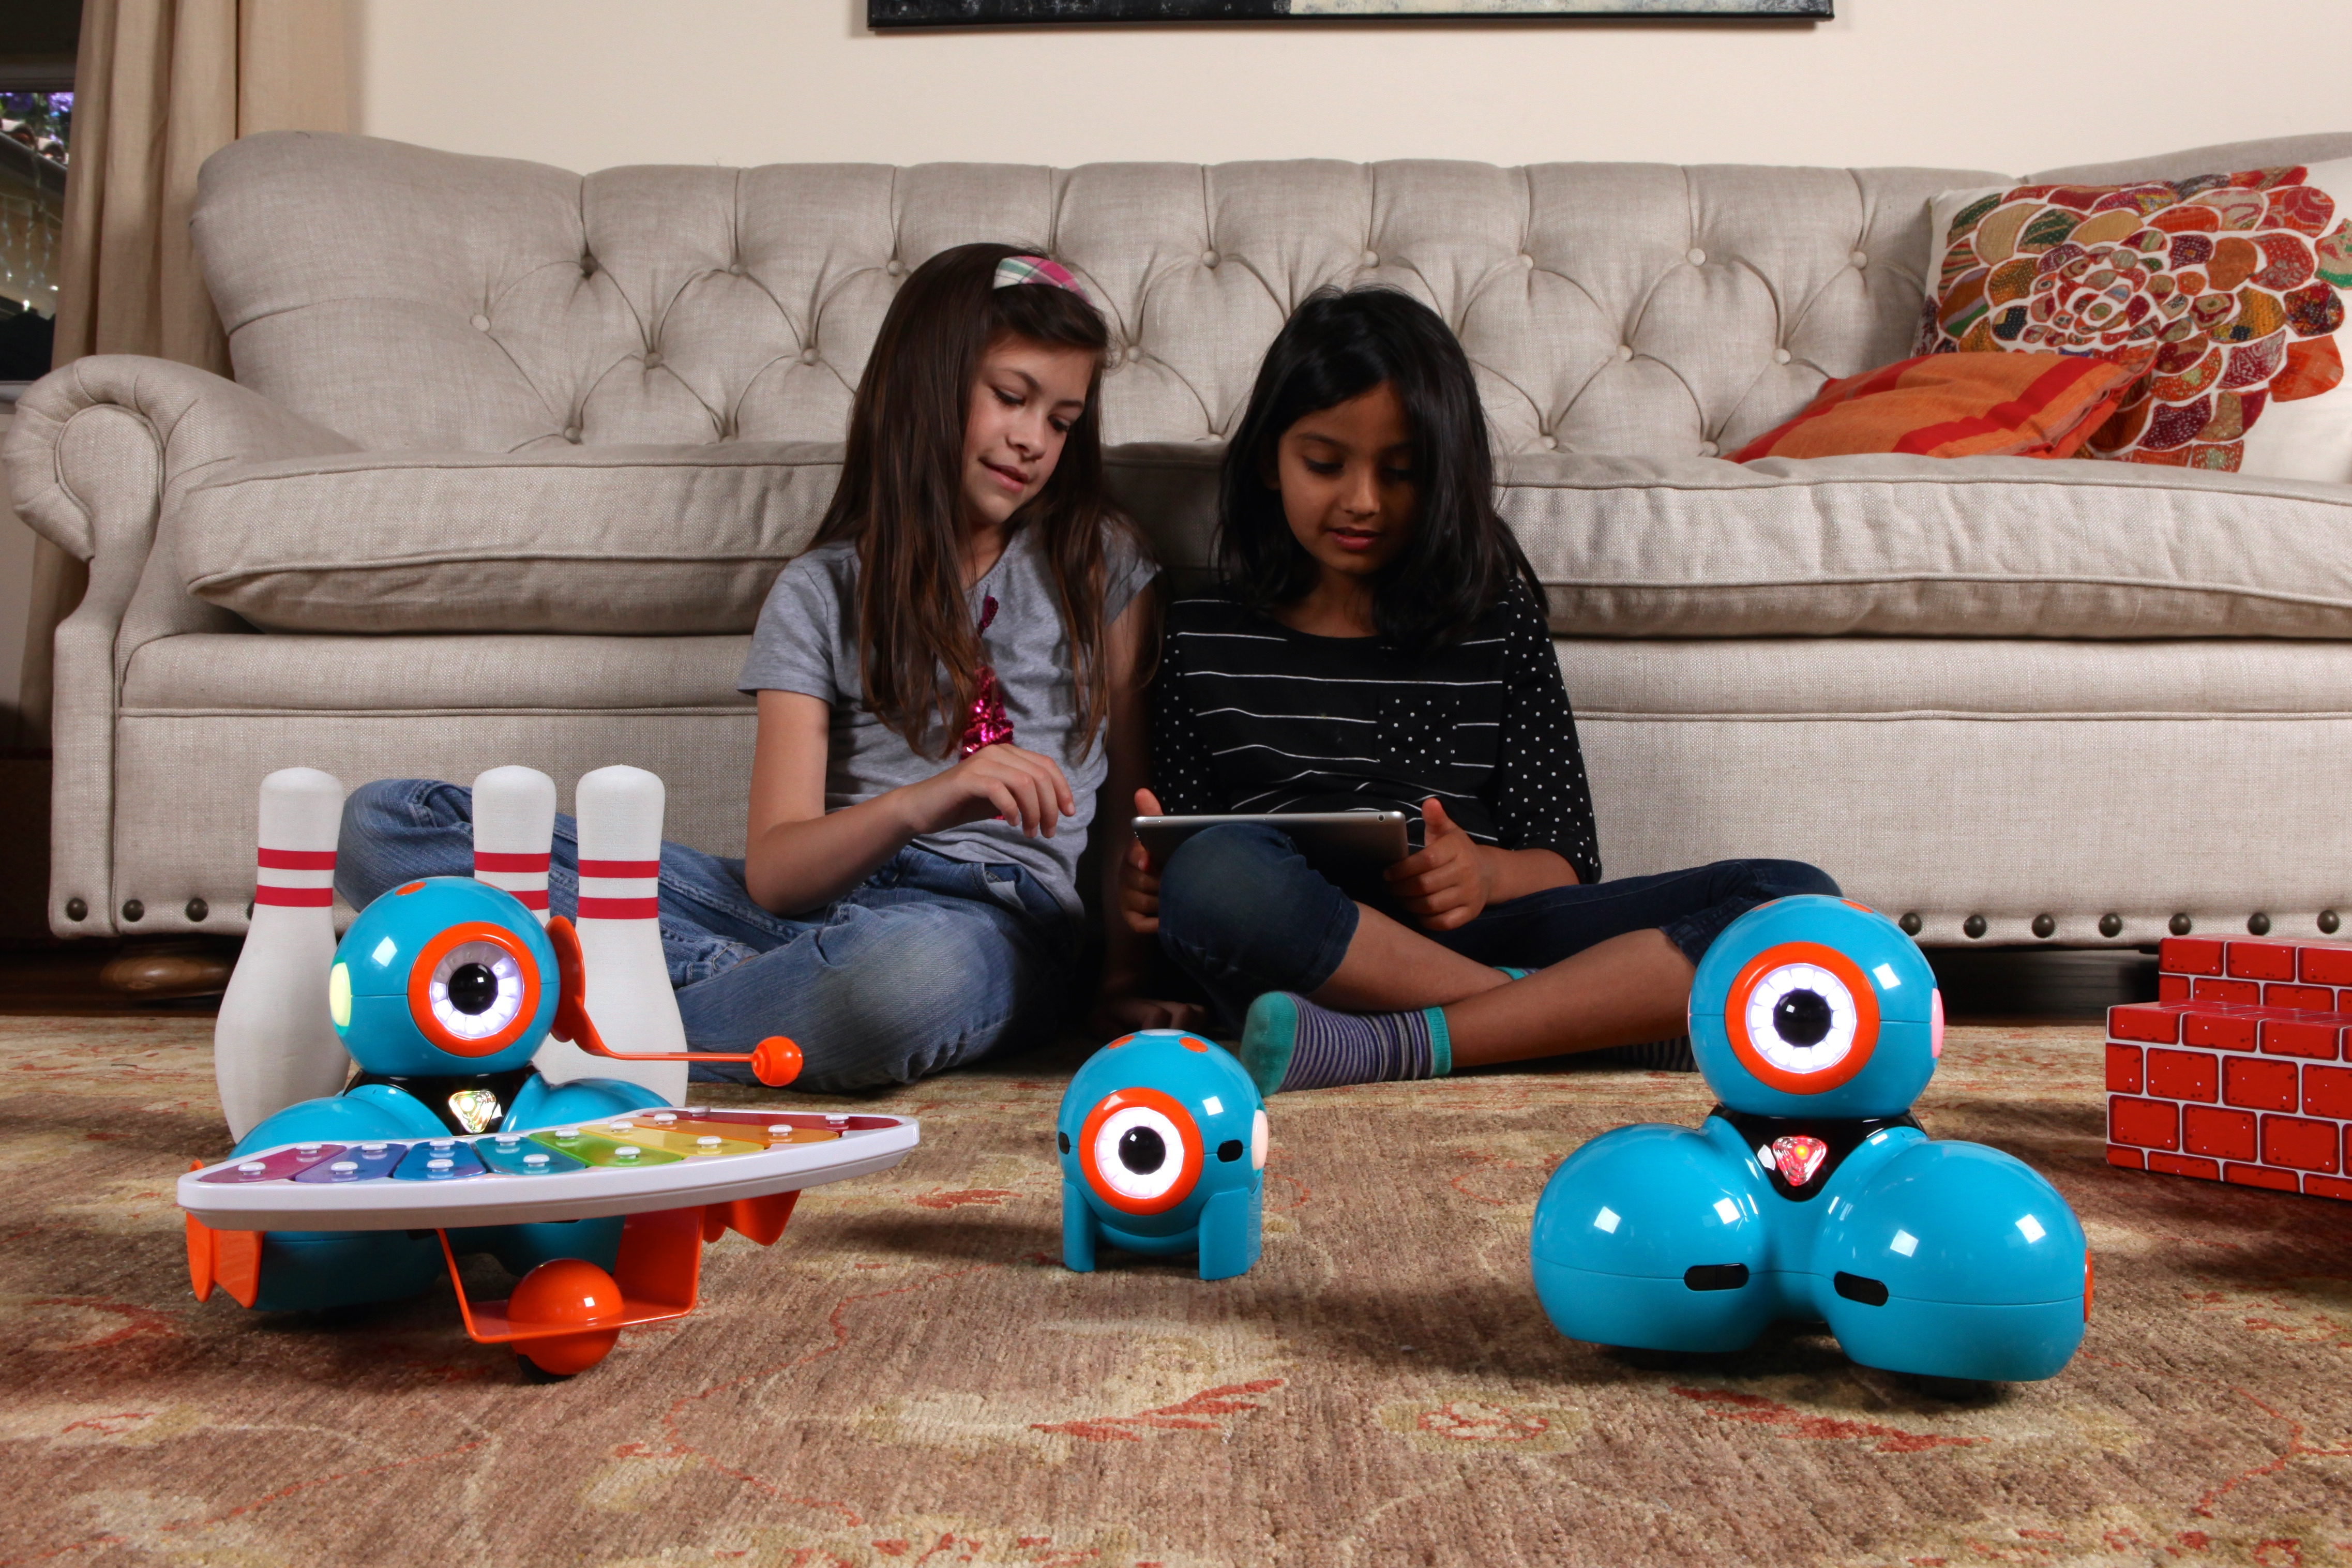 Girls, ages 8 and 9 playing with Dash & Dot